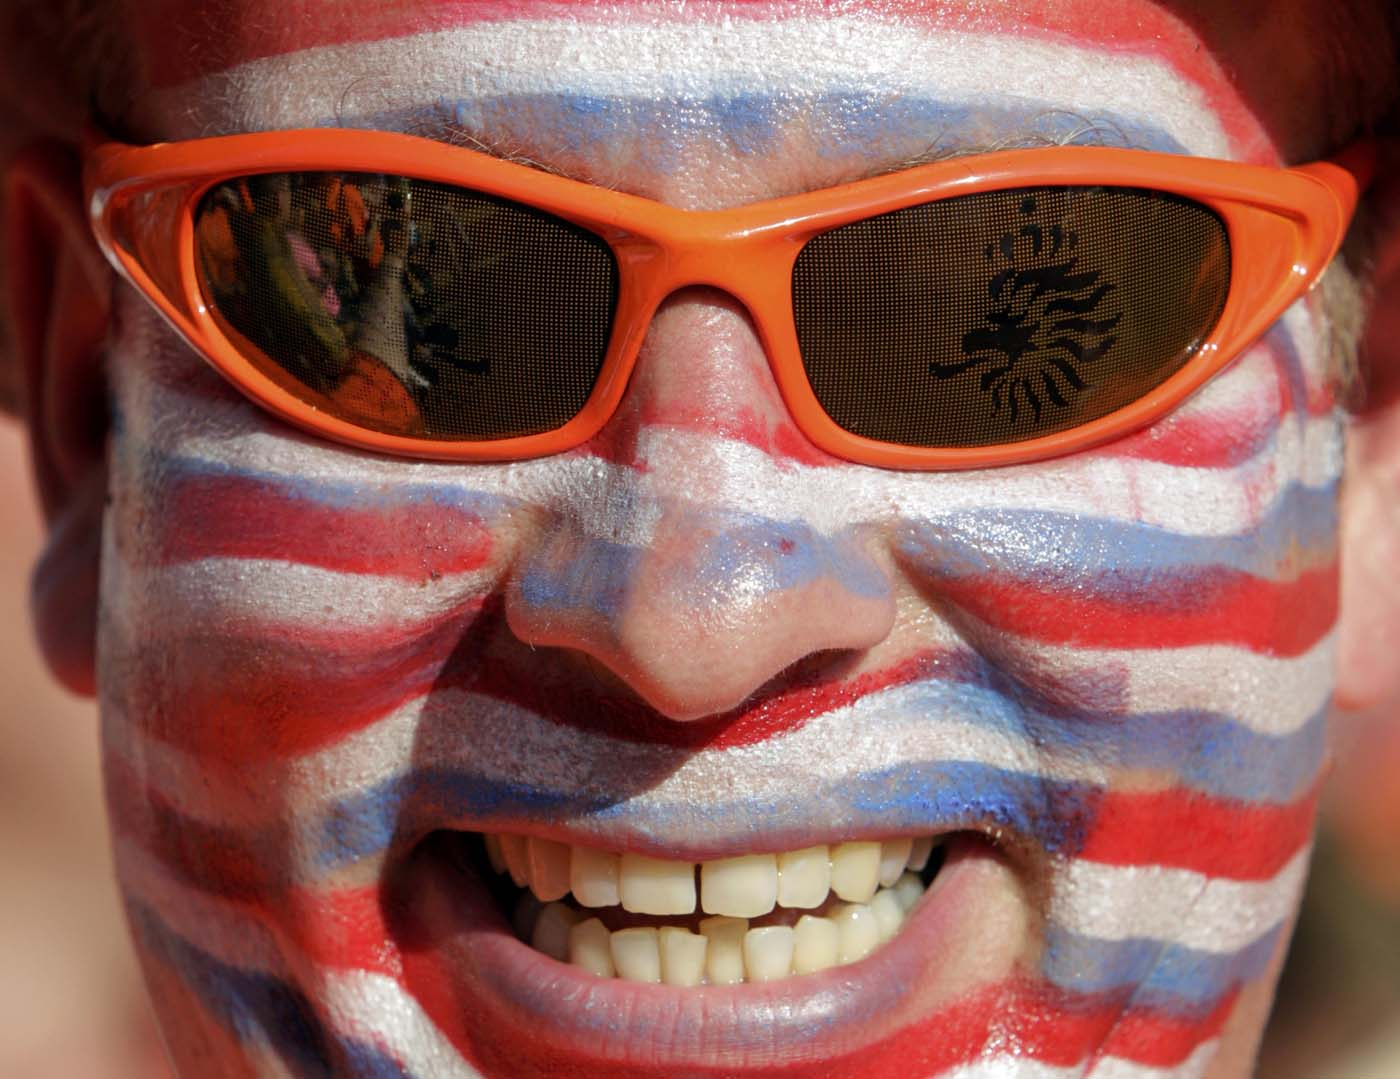 A Dutch soccer fan smiles as he relaxes at the Euro 2012 fan zone in Kharkiv, some 480 km (300 miles) east of Kiev, June 13, 2012, ahead of the Group B Euro 2012 between Netherlands and Gemany. (Vasily Fedosenko/Reuters)